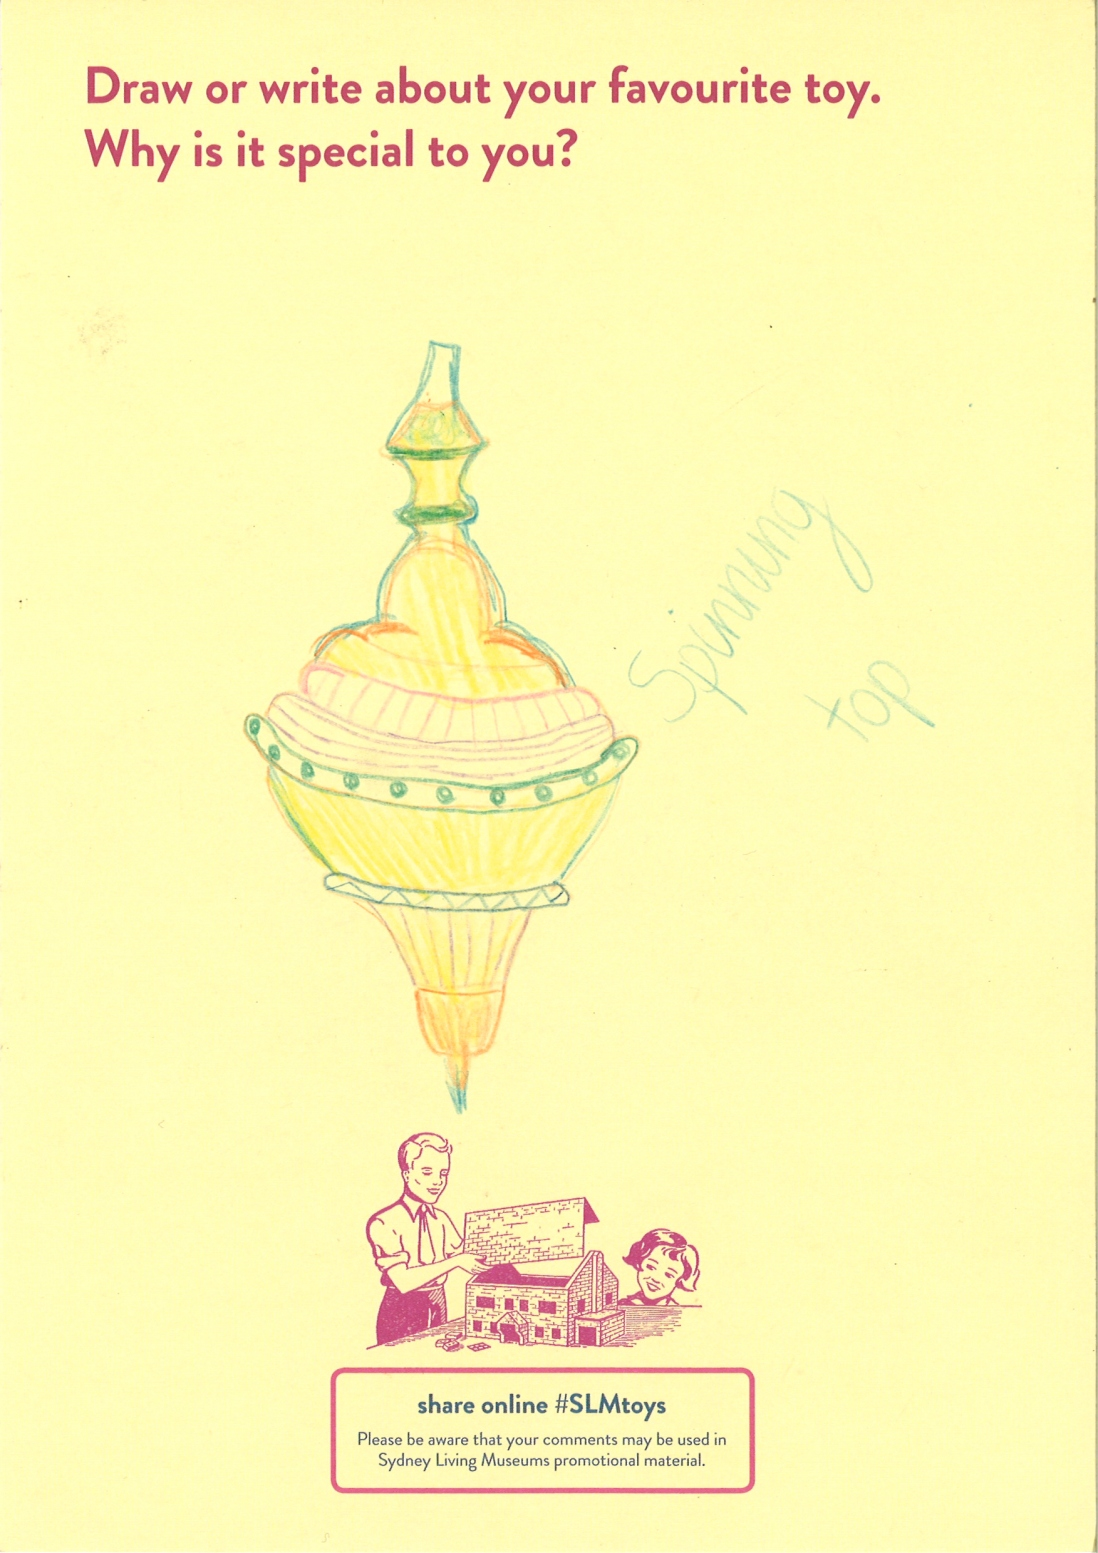 A colourful drawing of a spinning top toy